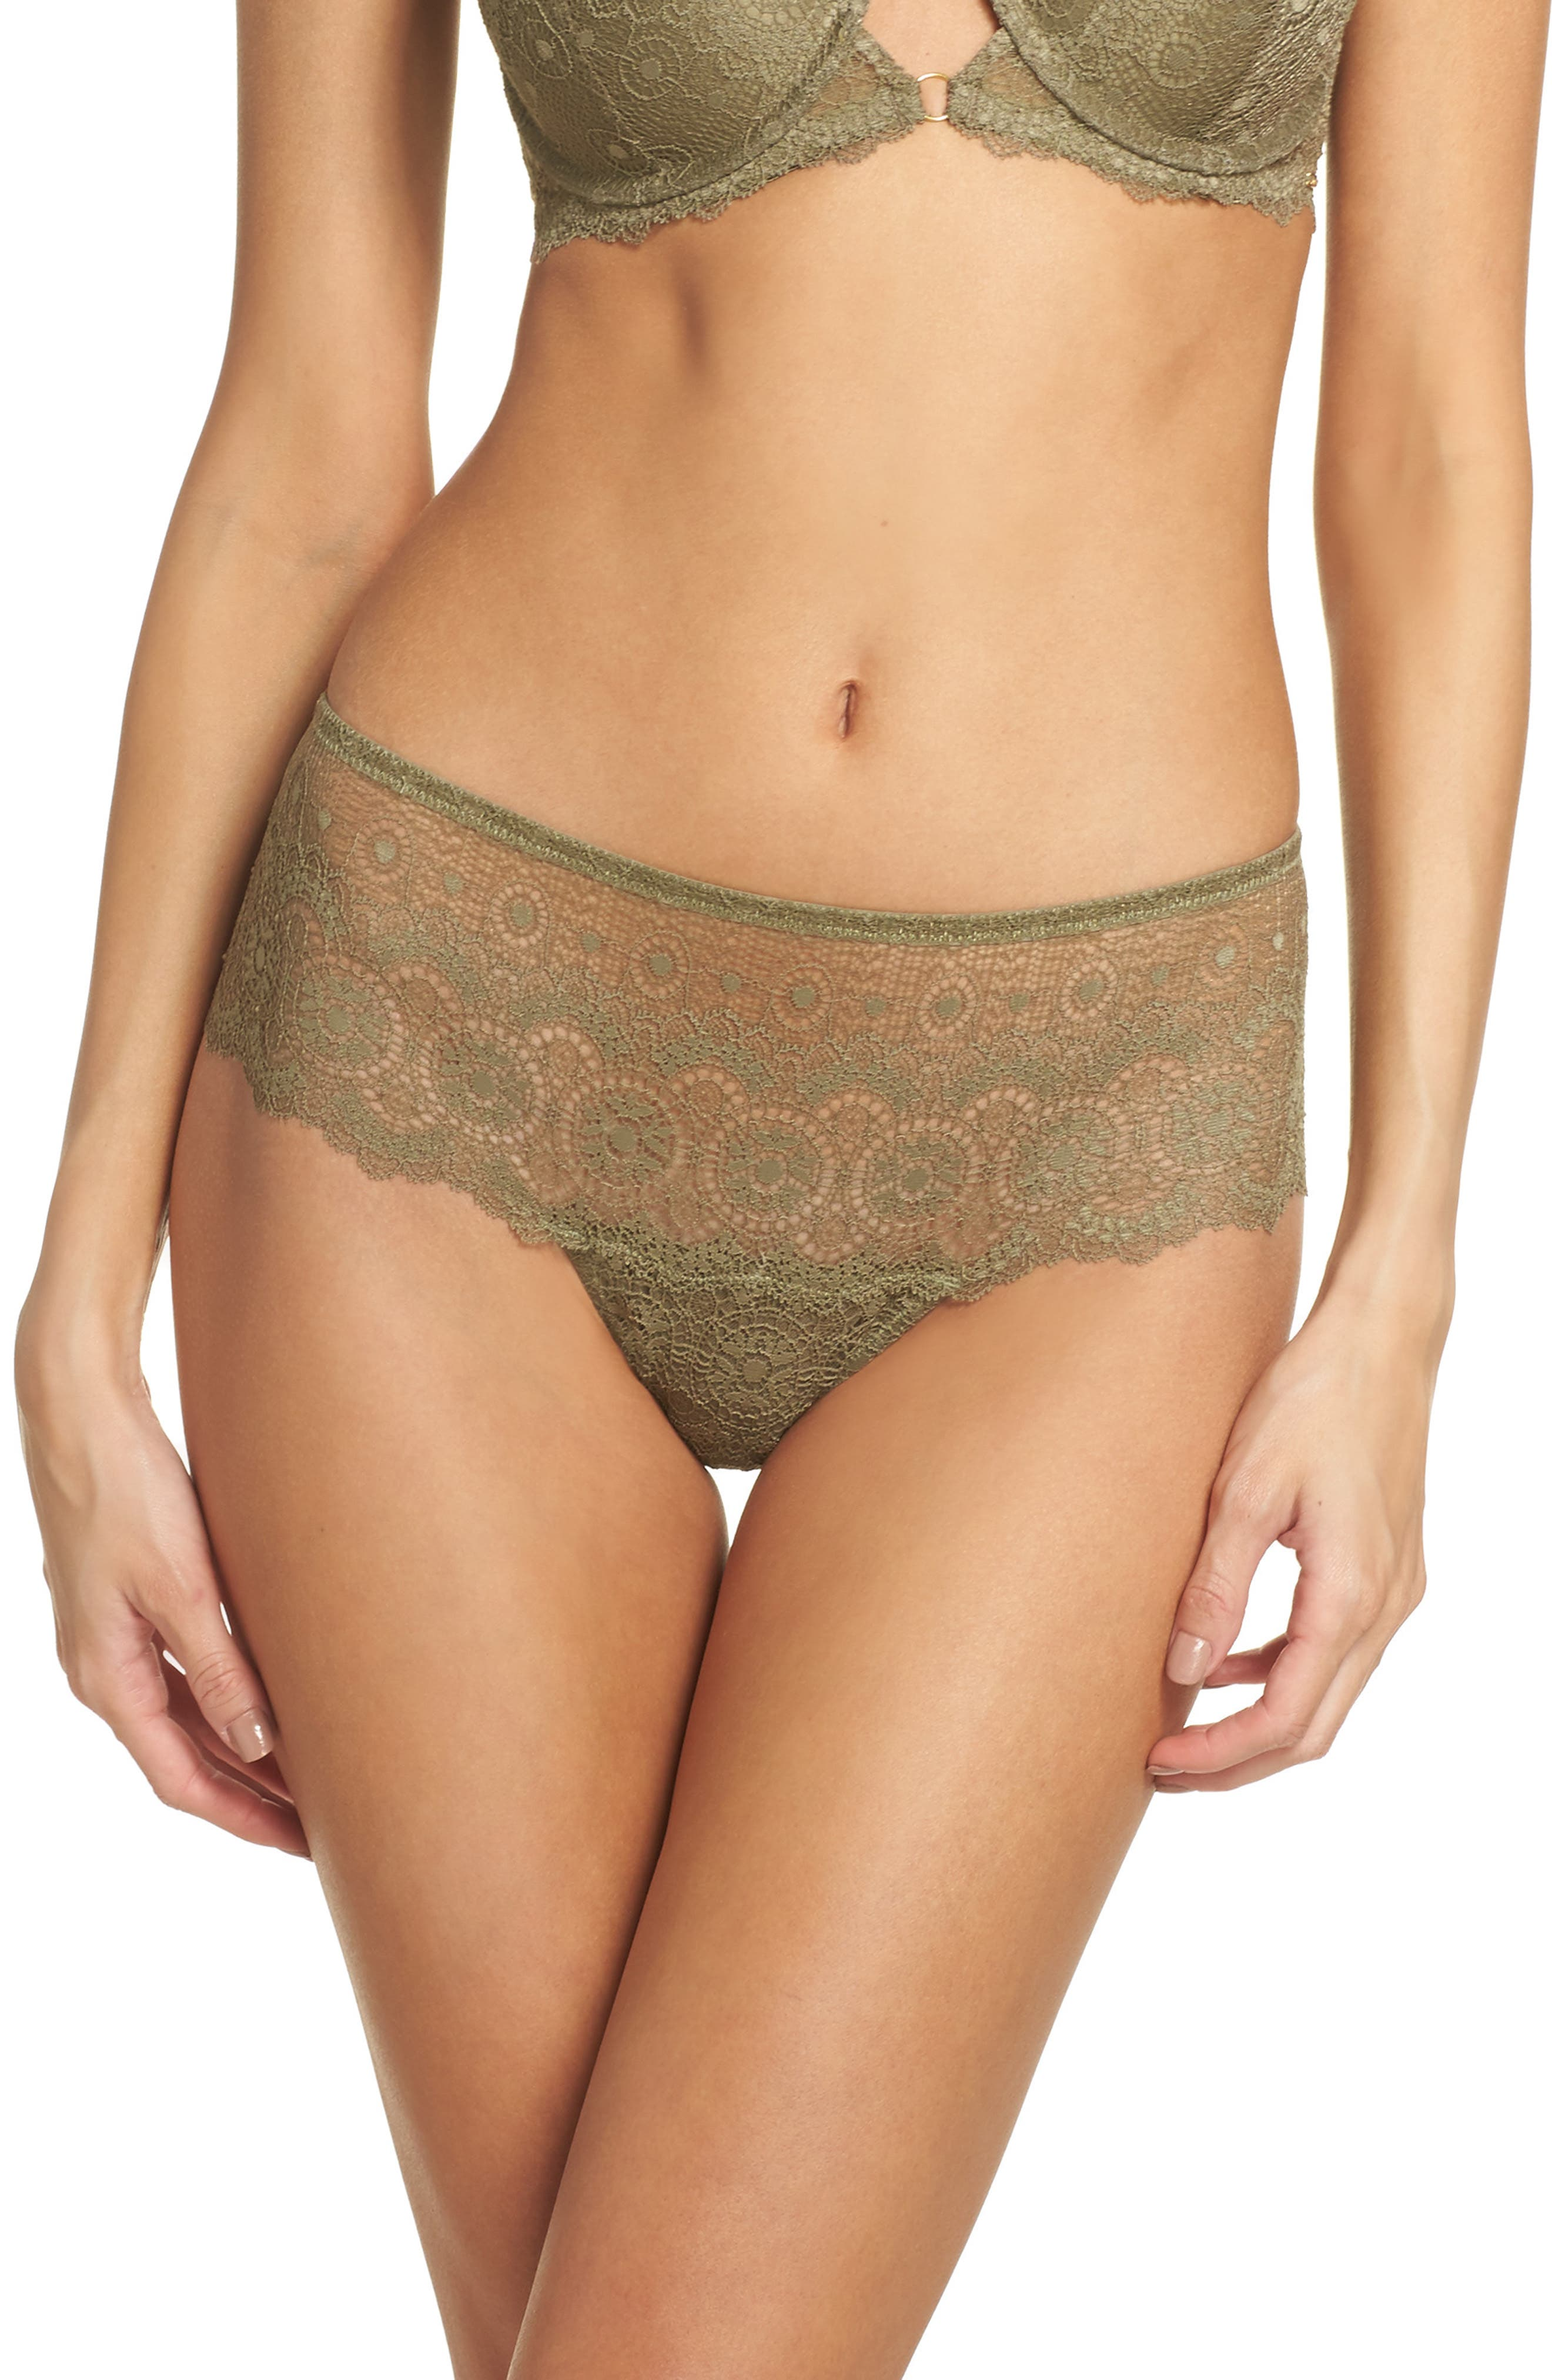 Alternate Image 1 Selected - Sam Edelman Lace Hipster Panties (3 for $33)